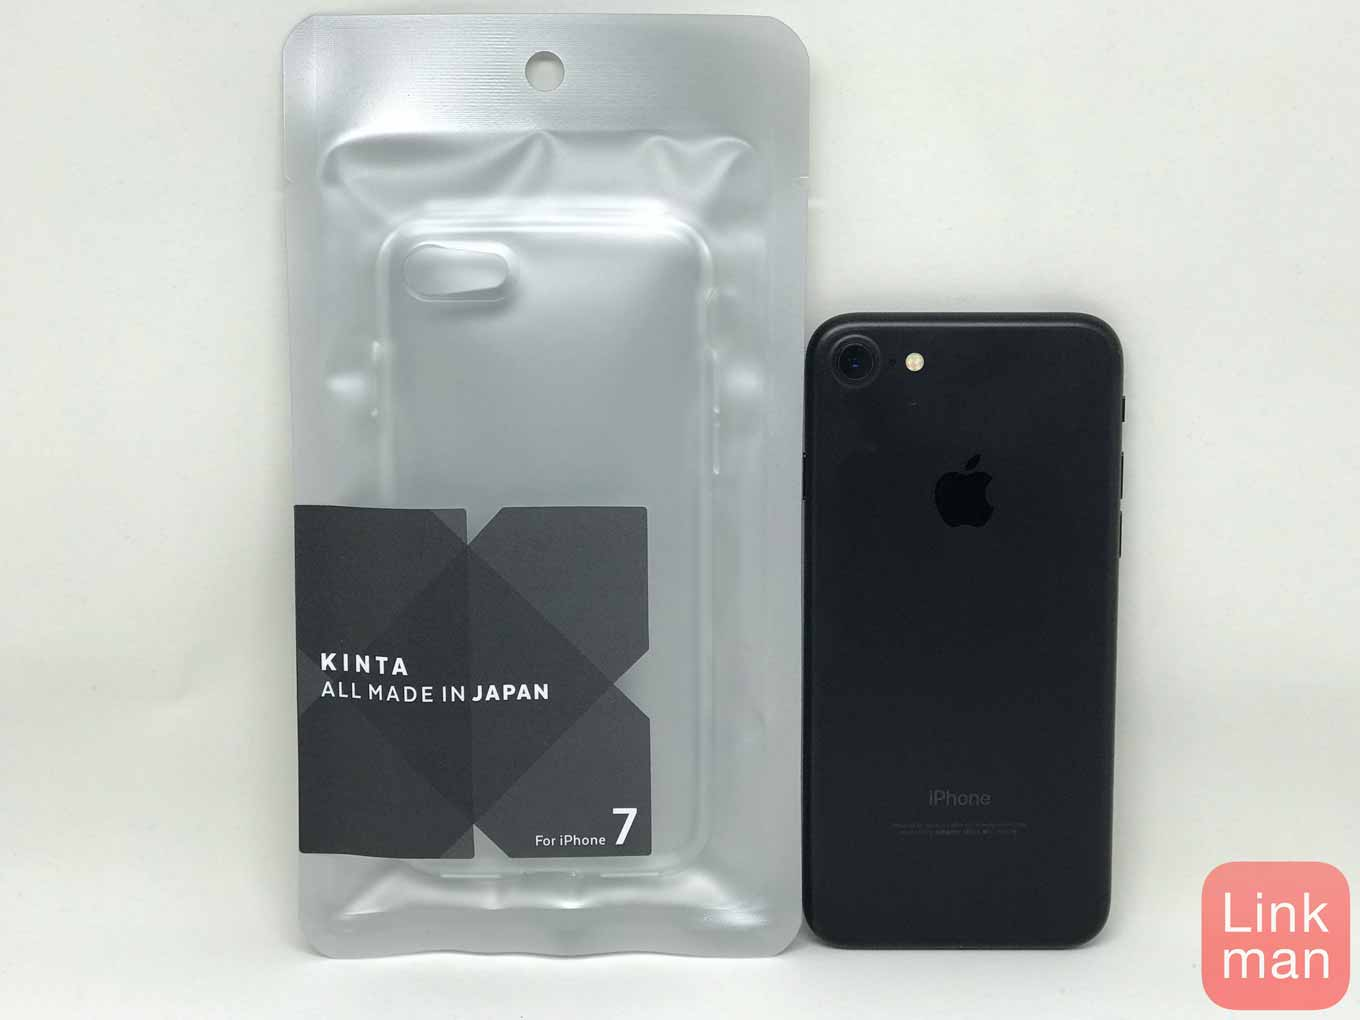 KINTA、iPhone 7対応クリアケース「KINTA Clear Case for iPhone 7」の販売を開始